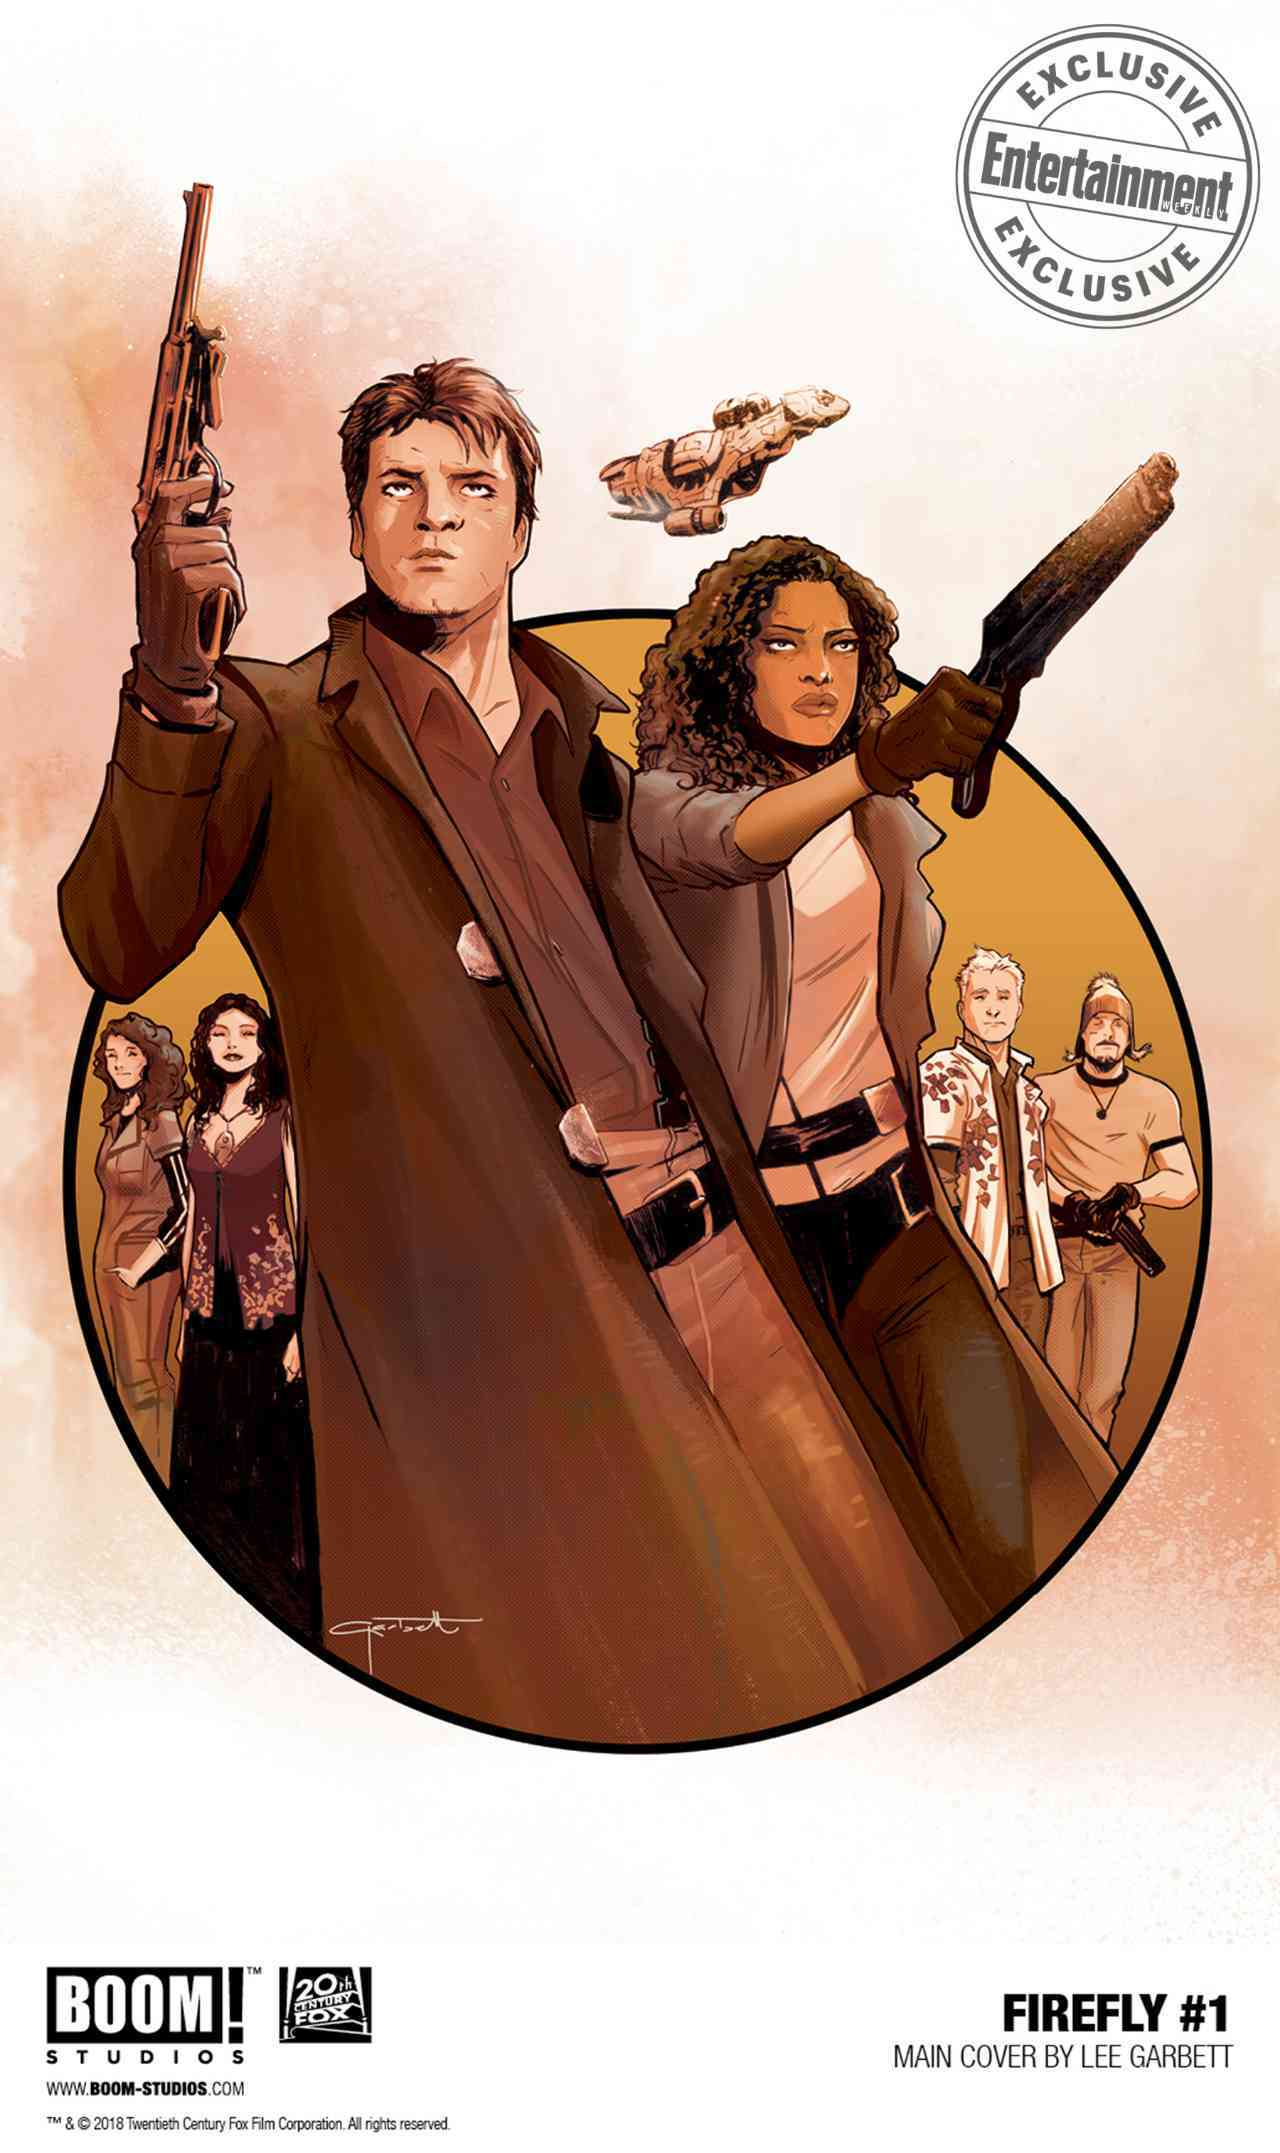 New 'Firefly' Series Announced